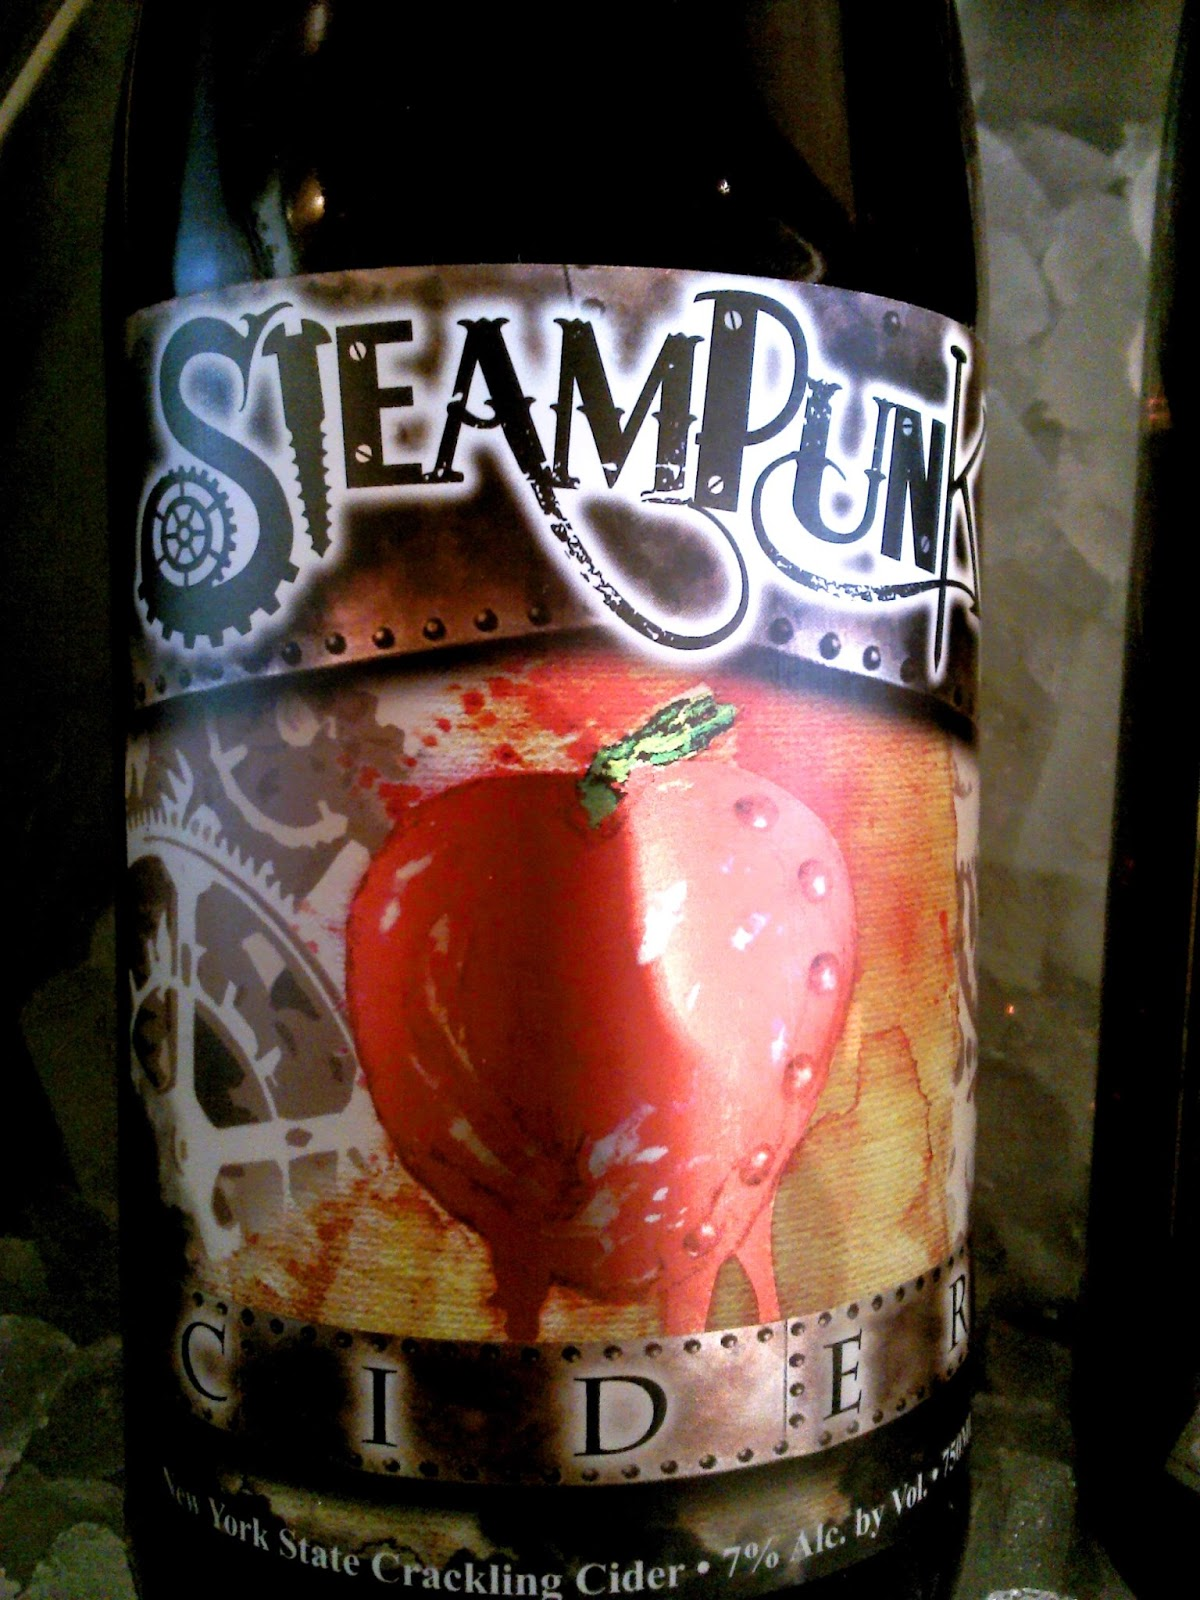 east coast wineries  steampunk cider from leonard oakes  ny